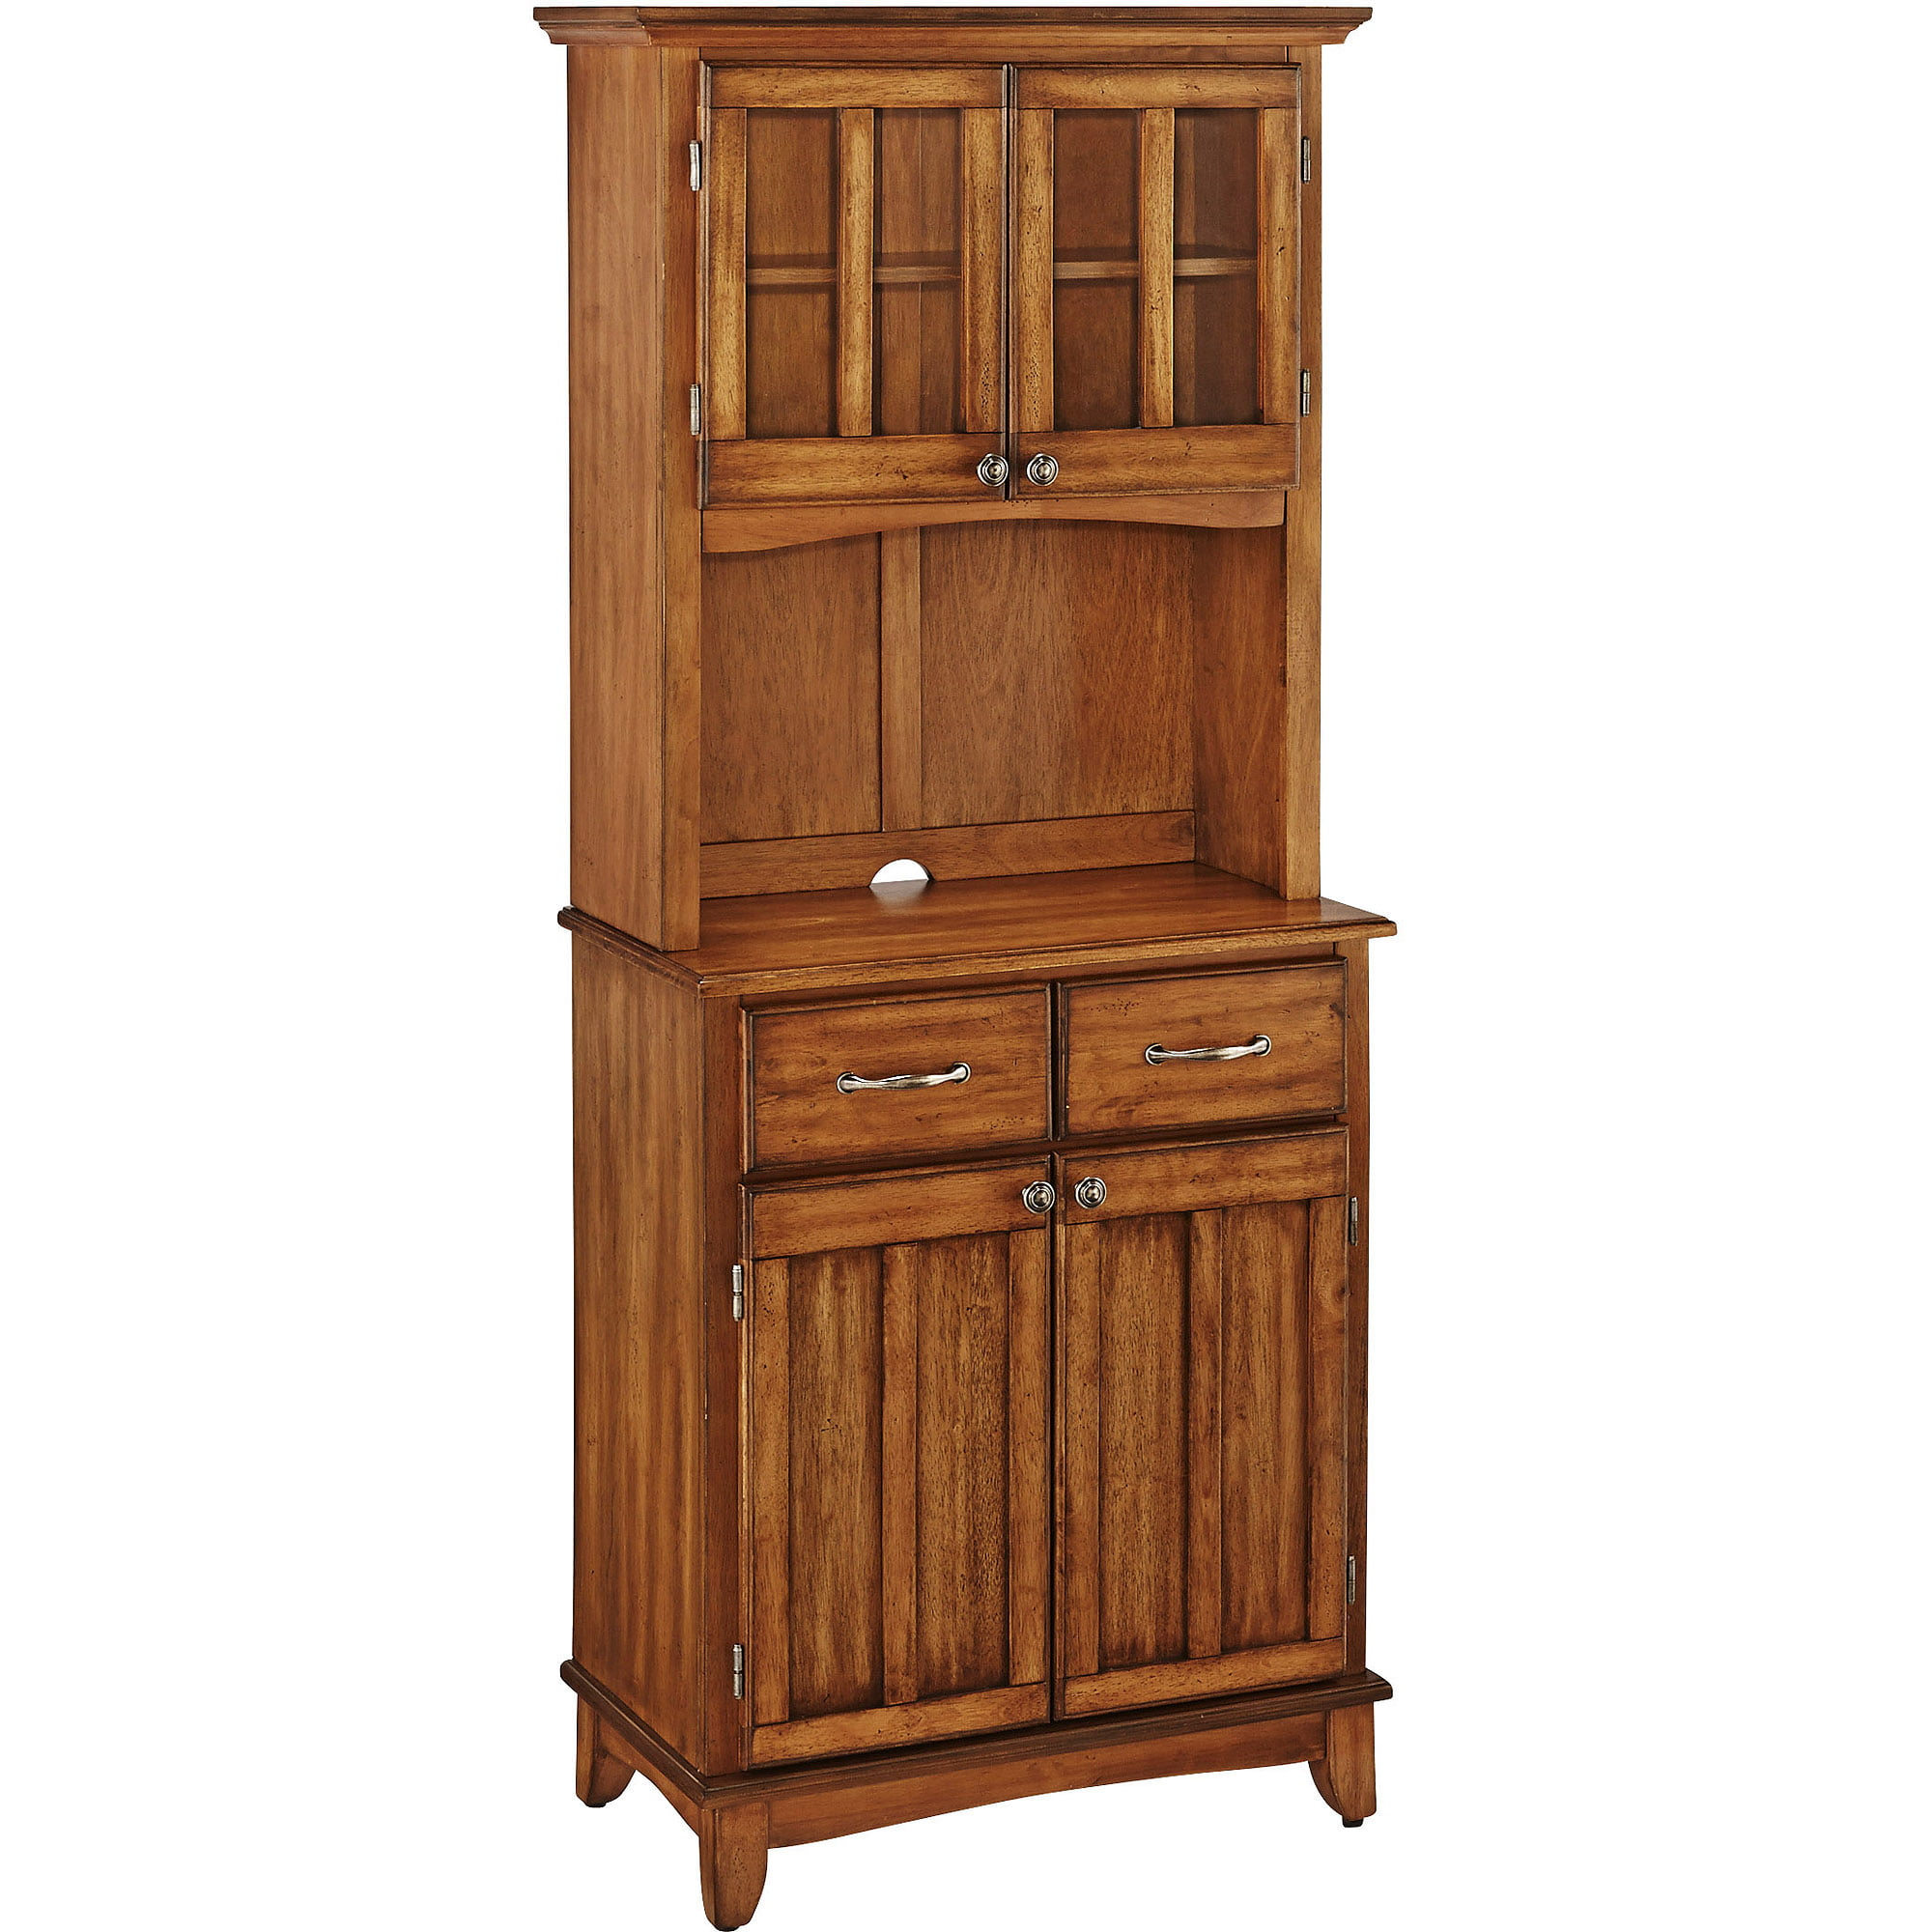 Home Styles Small Buffet With Two-Door Hutch Cottage Oak Finish - Walmart.com  sc 1 st  Walmart : cottage door - pezcame.com